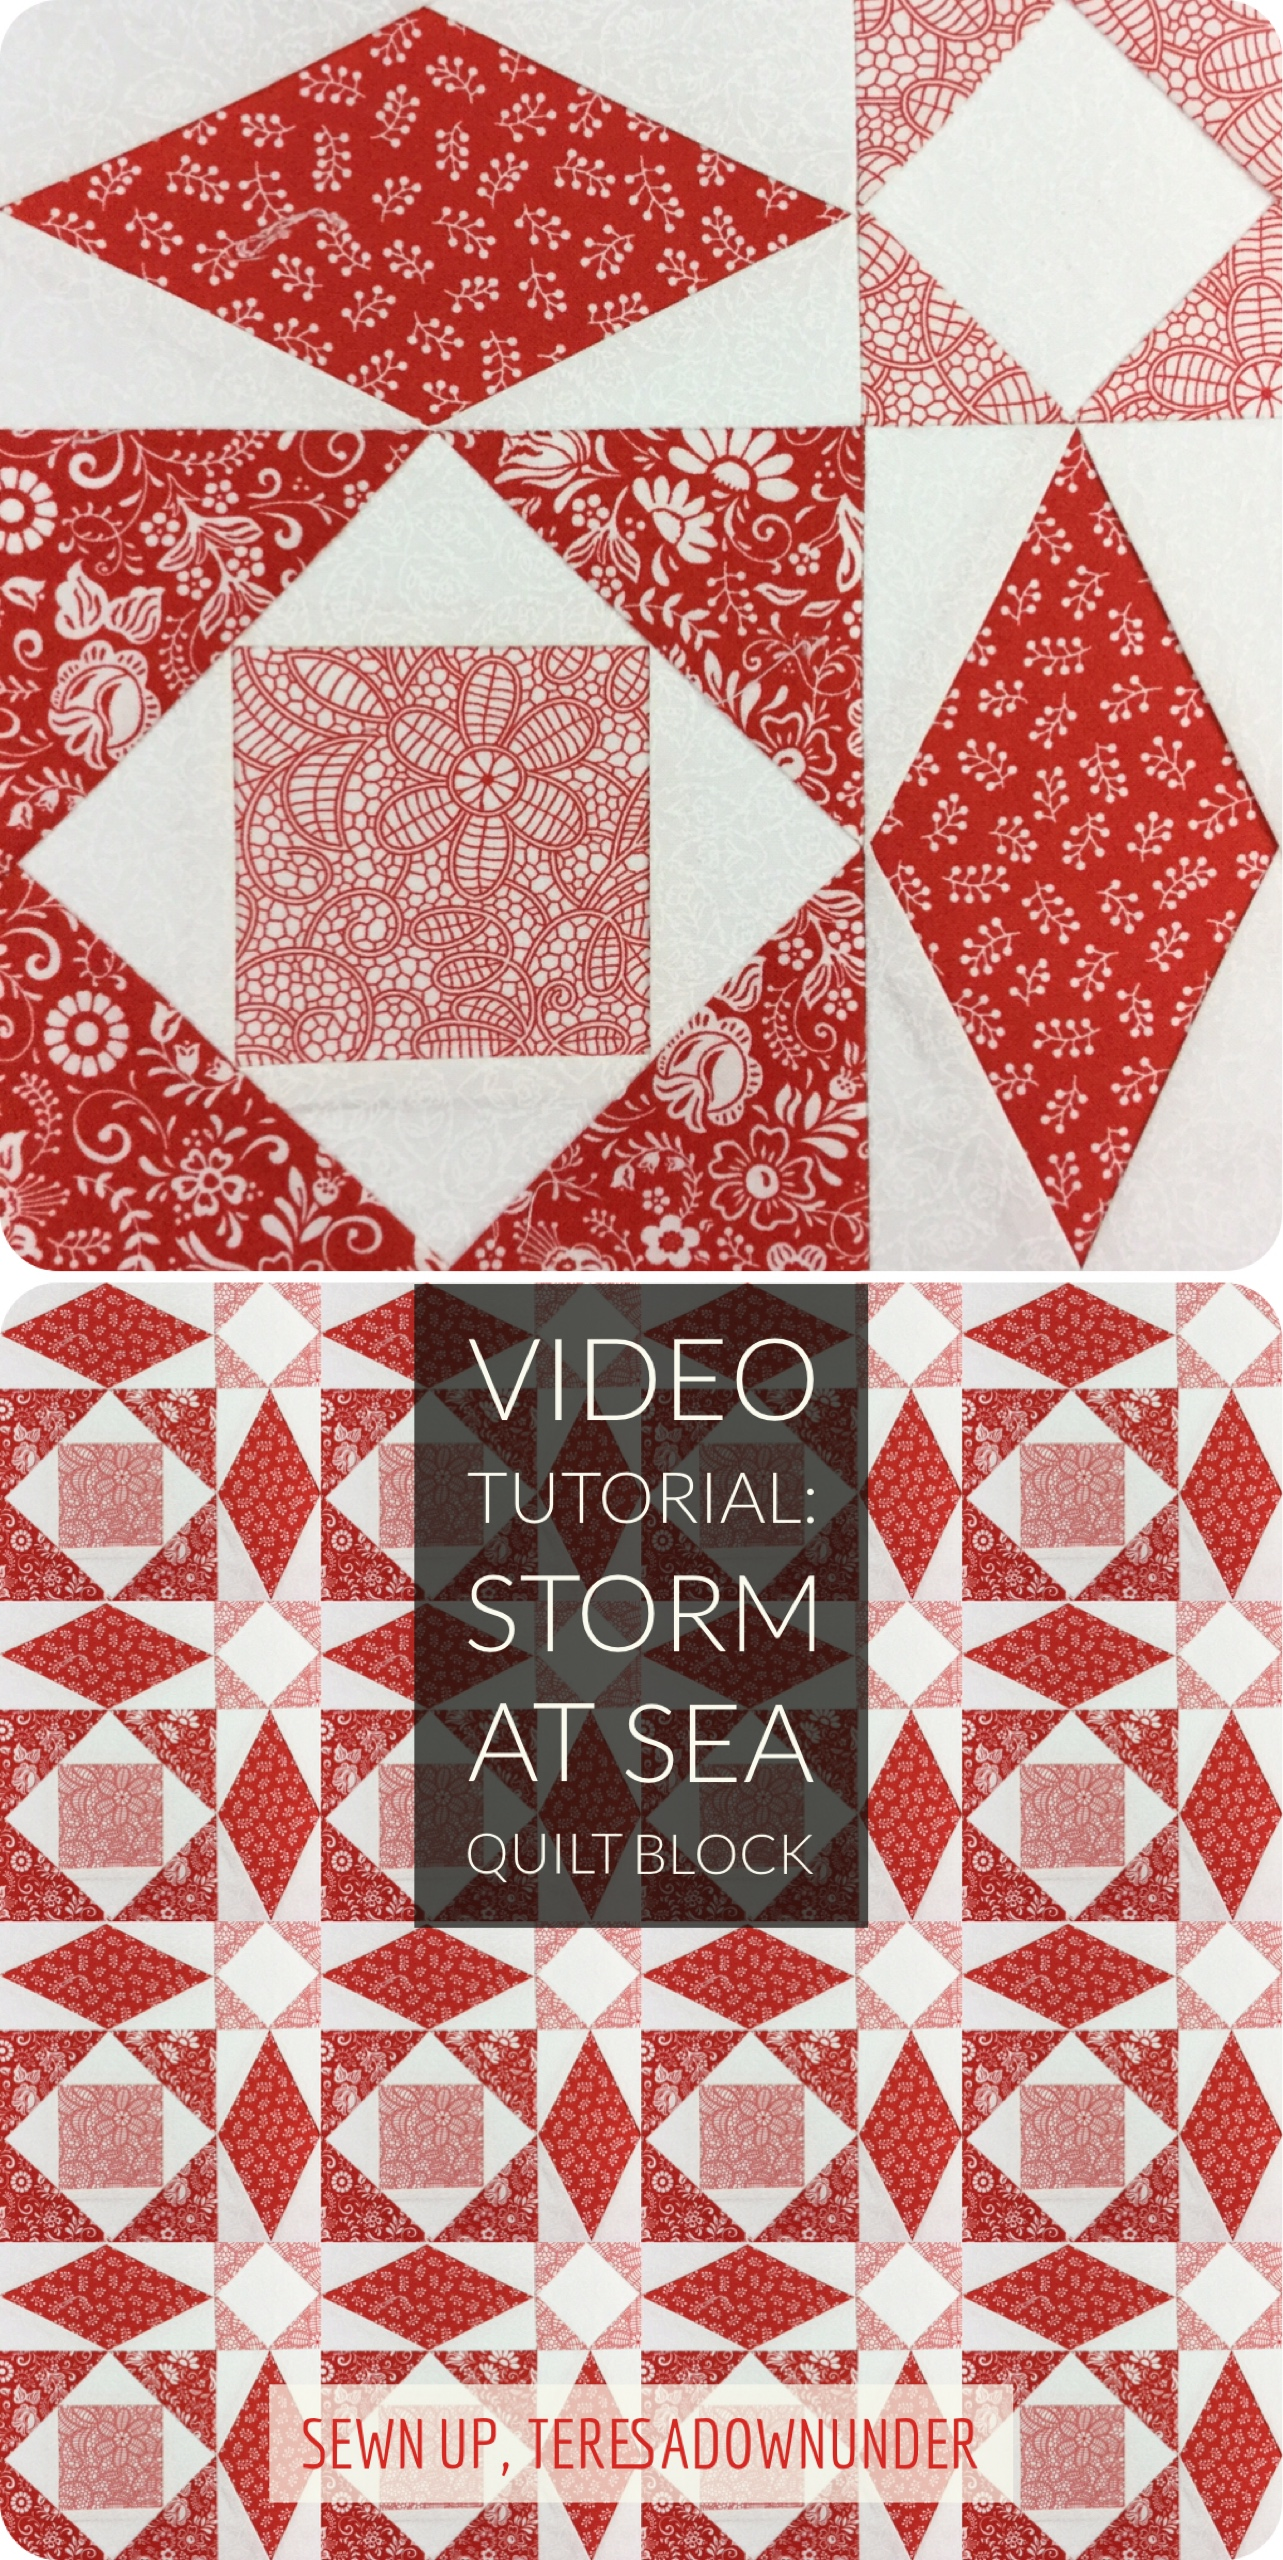 Video tutorial storm at sea quilt block version 1 sewn up for Storm at sea quilt template